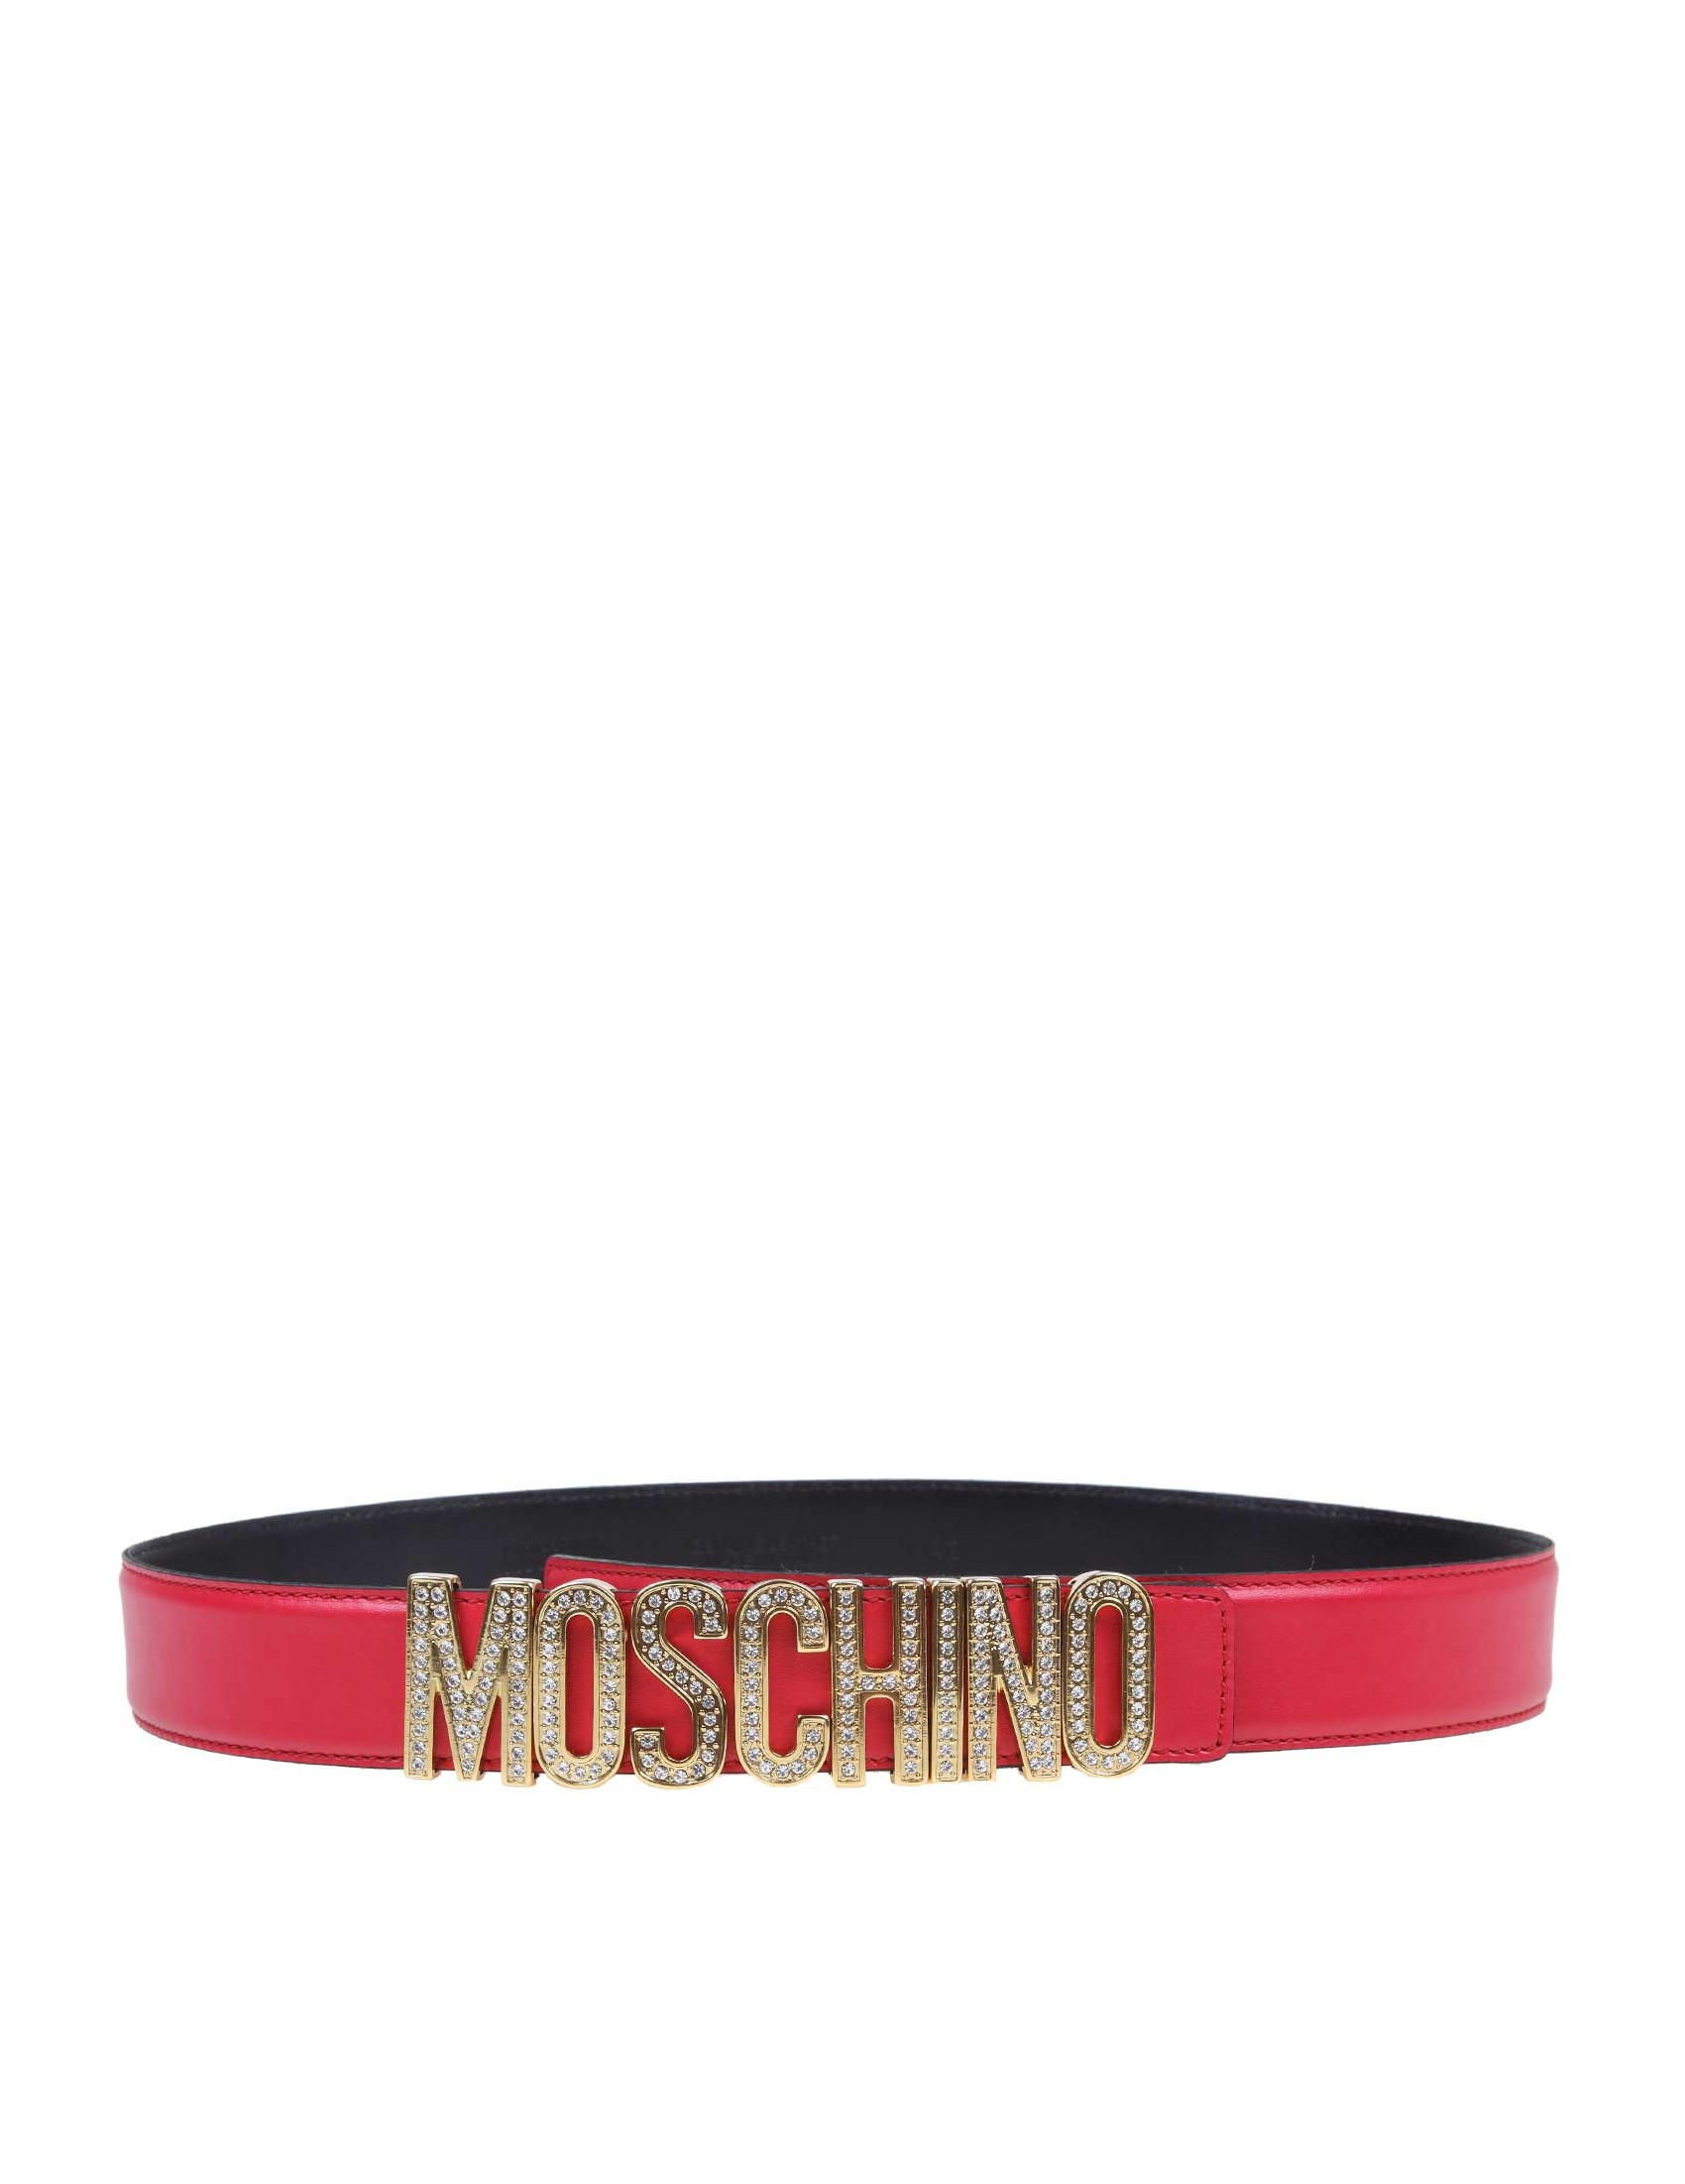 Details about MOSCHINO Women's Belts Fuchsia NIB Authentic